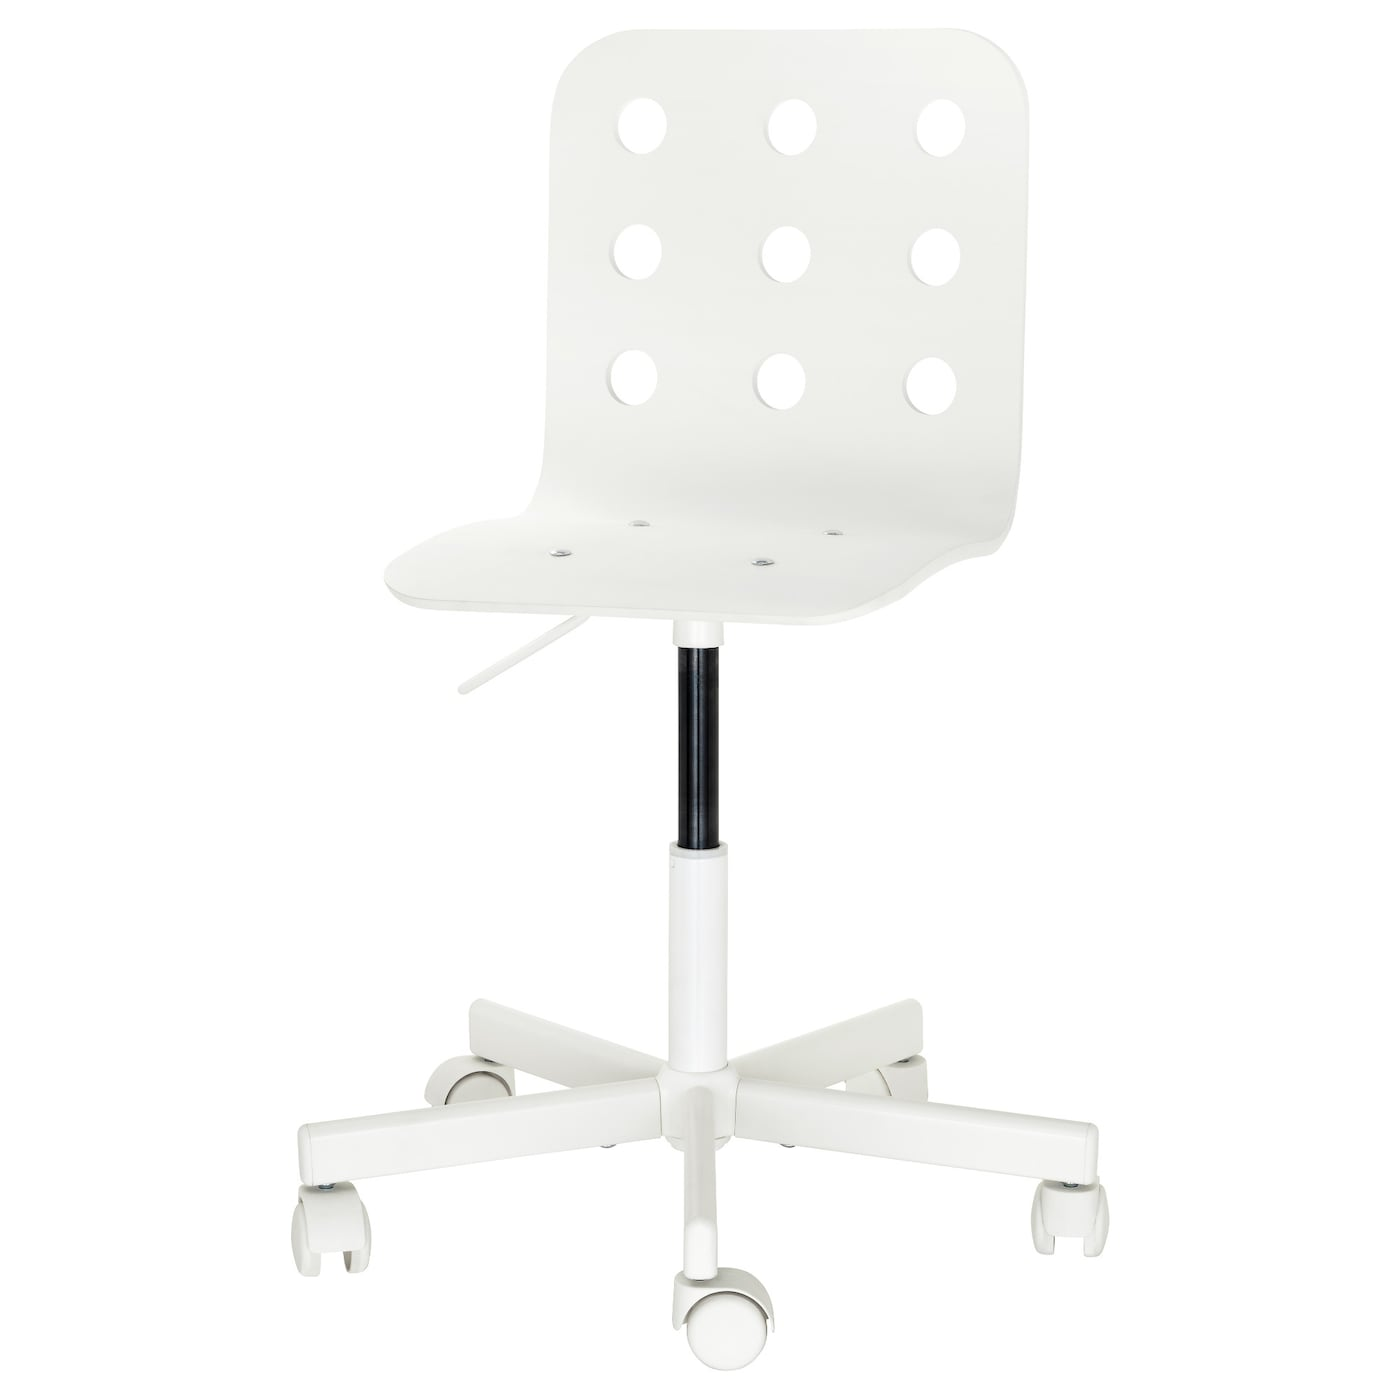 ikea jules children 39 s desk chair you sit comfortably since the chair